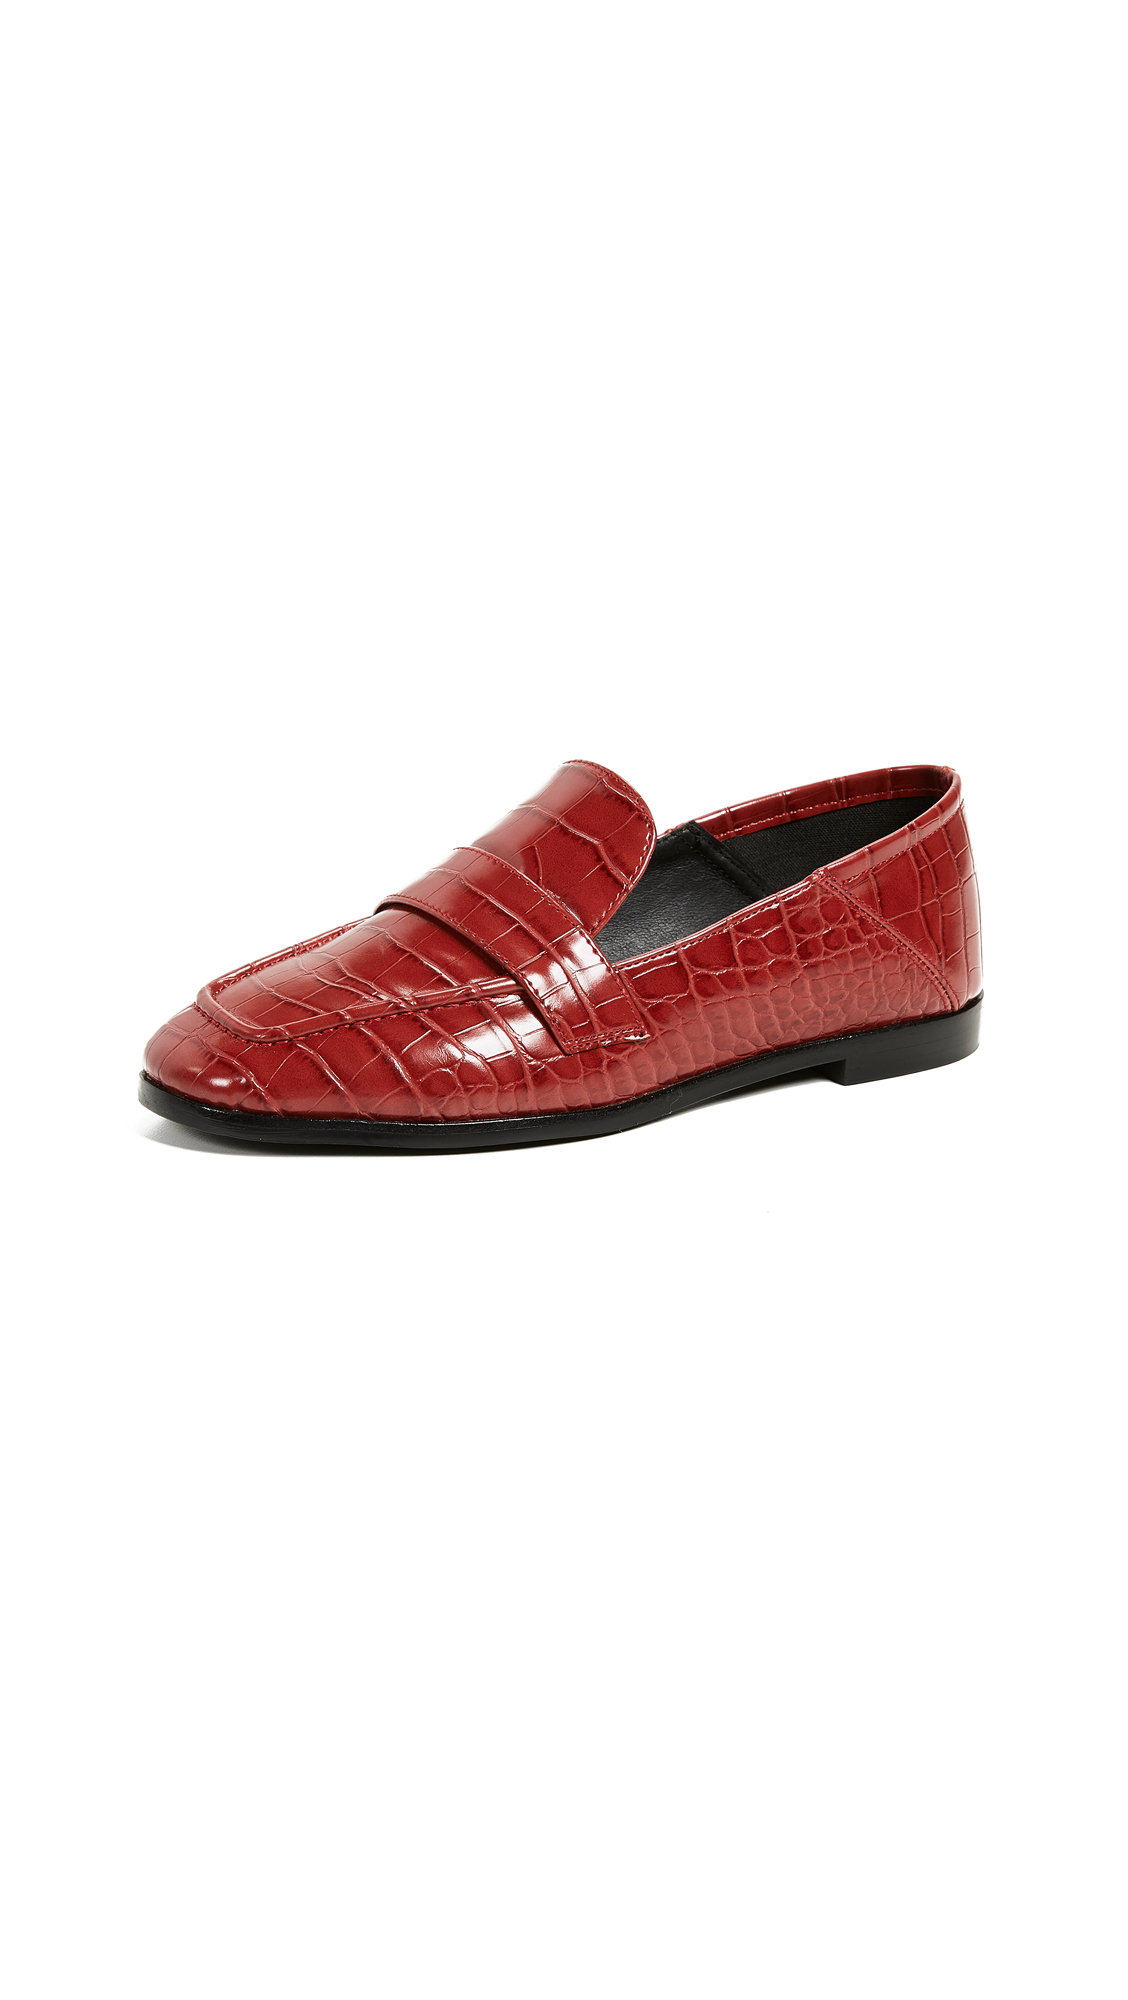 Jeffrey Campbell Jesse III Loafers - Red Croco